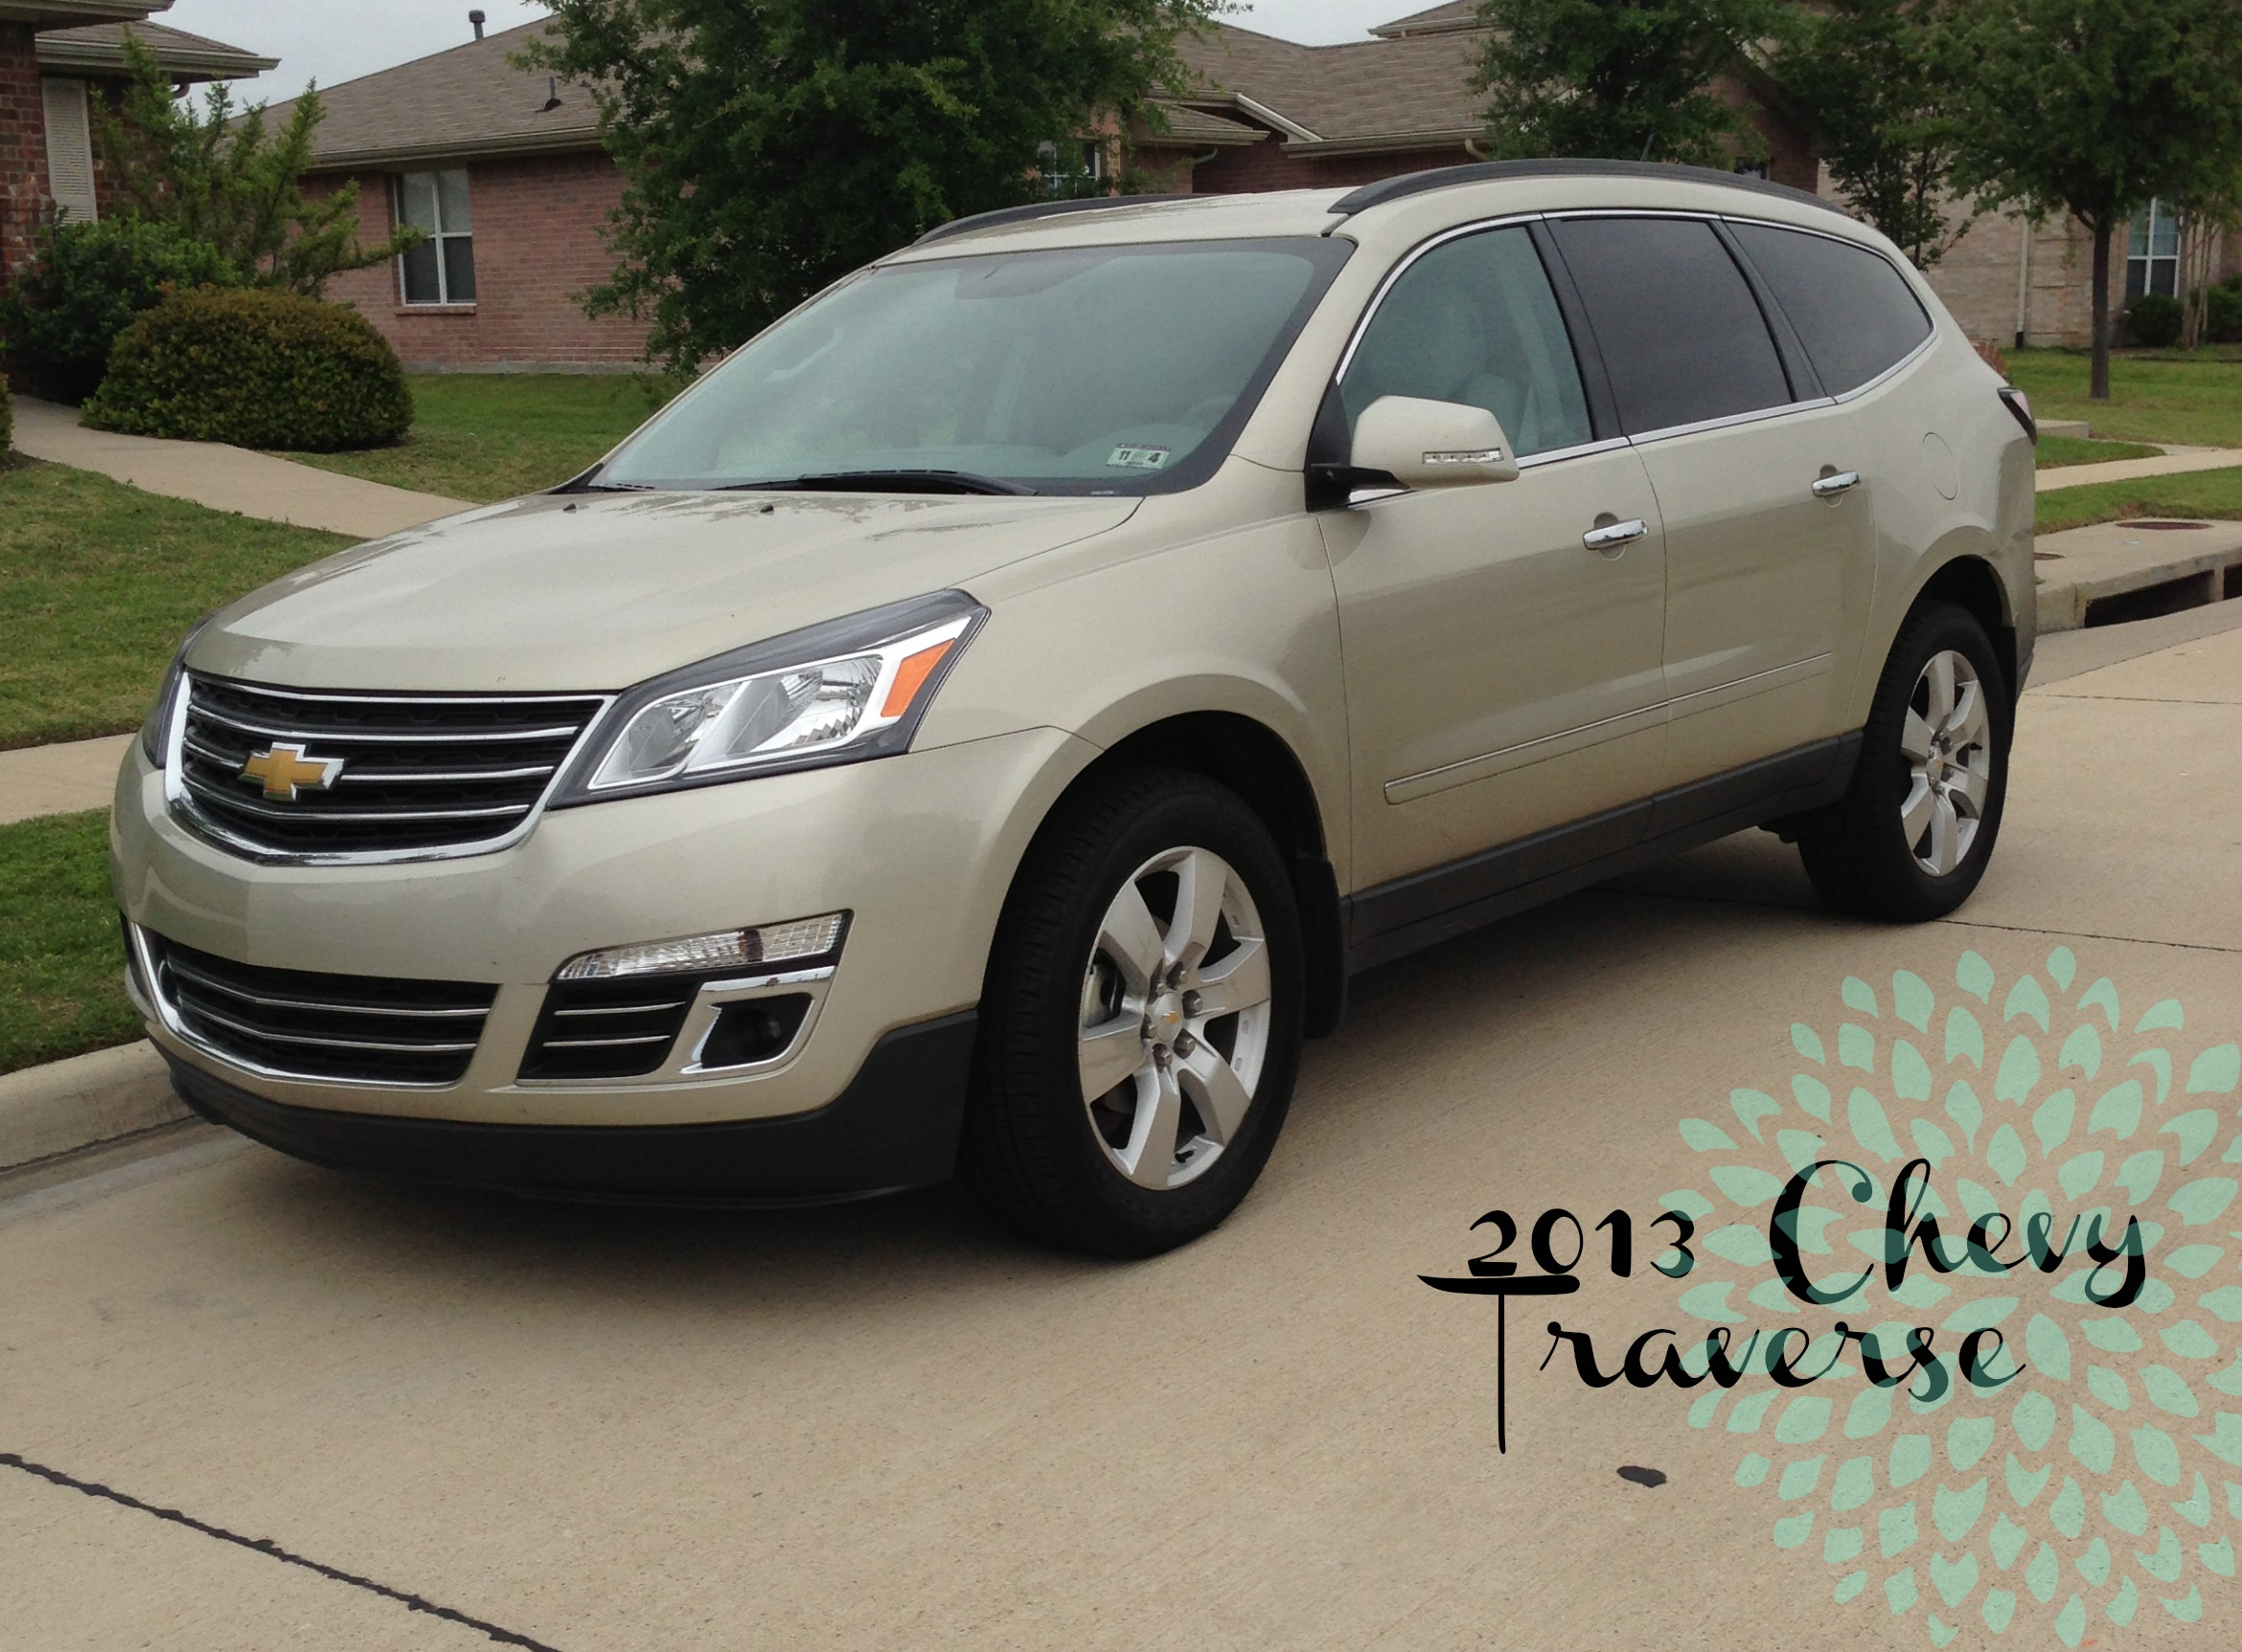 Road Tripin' with 2013 Chevy Traverse